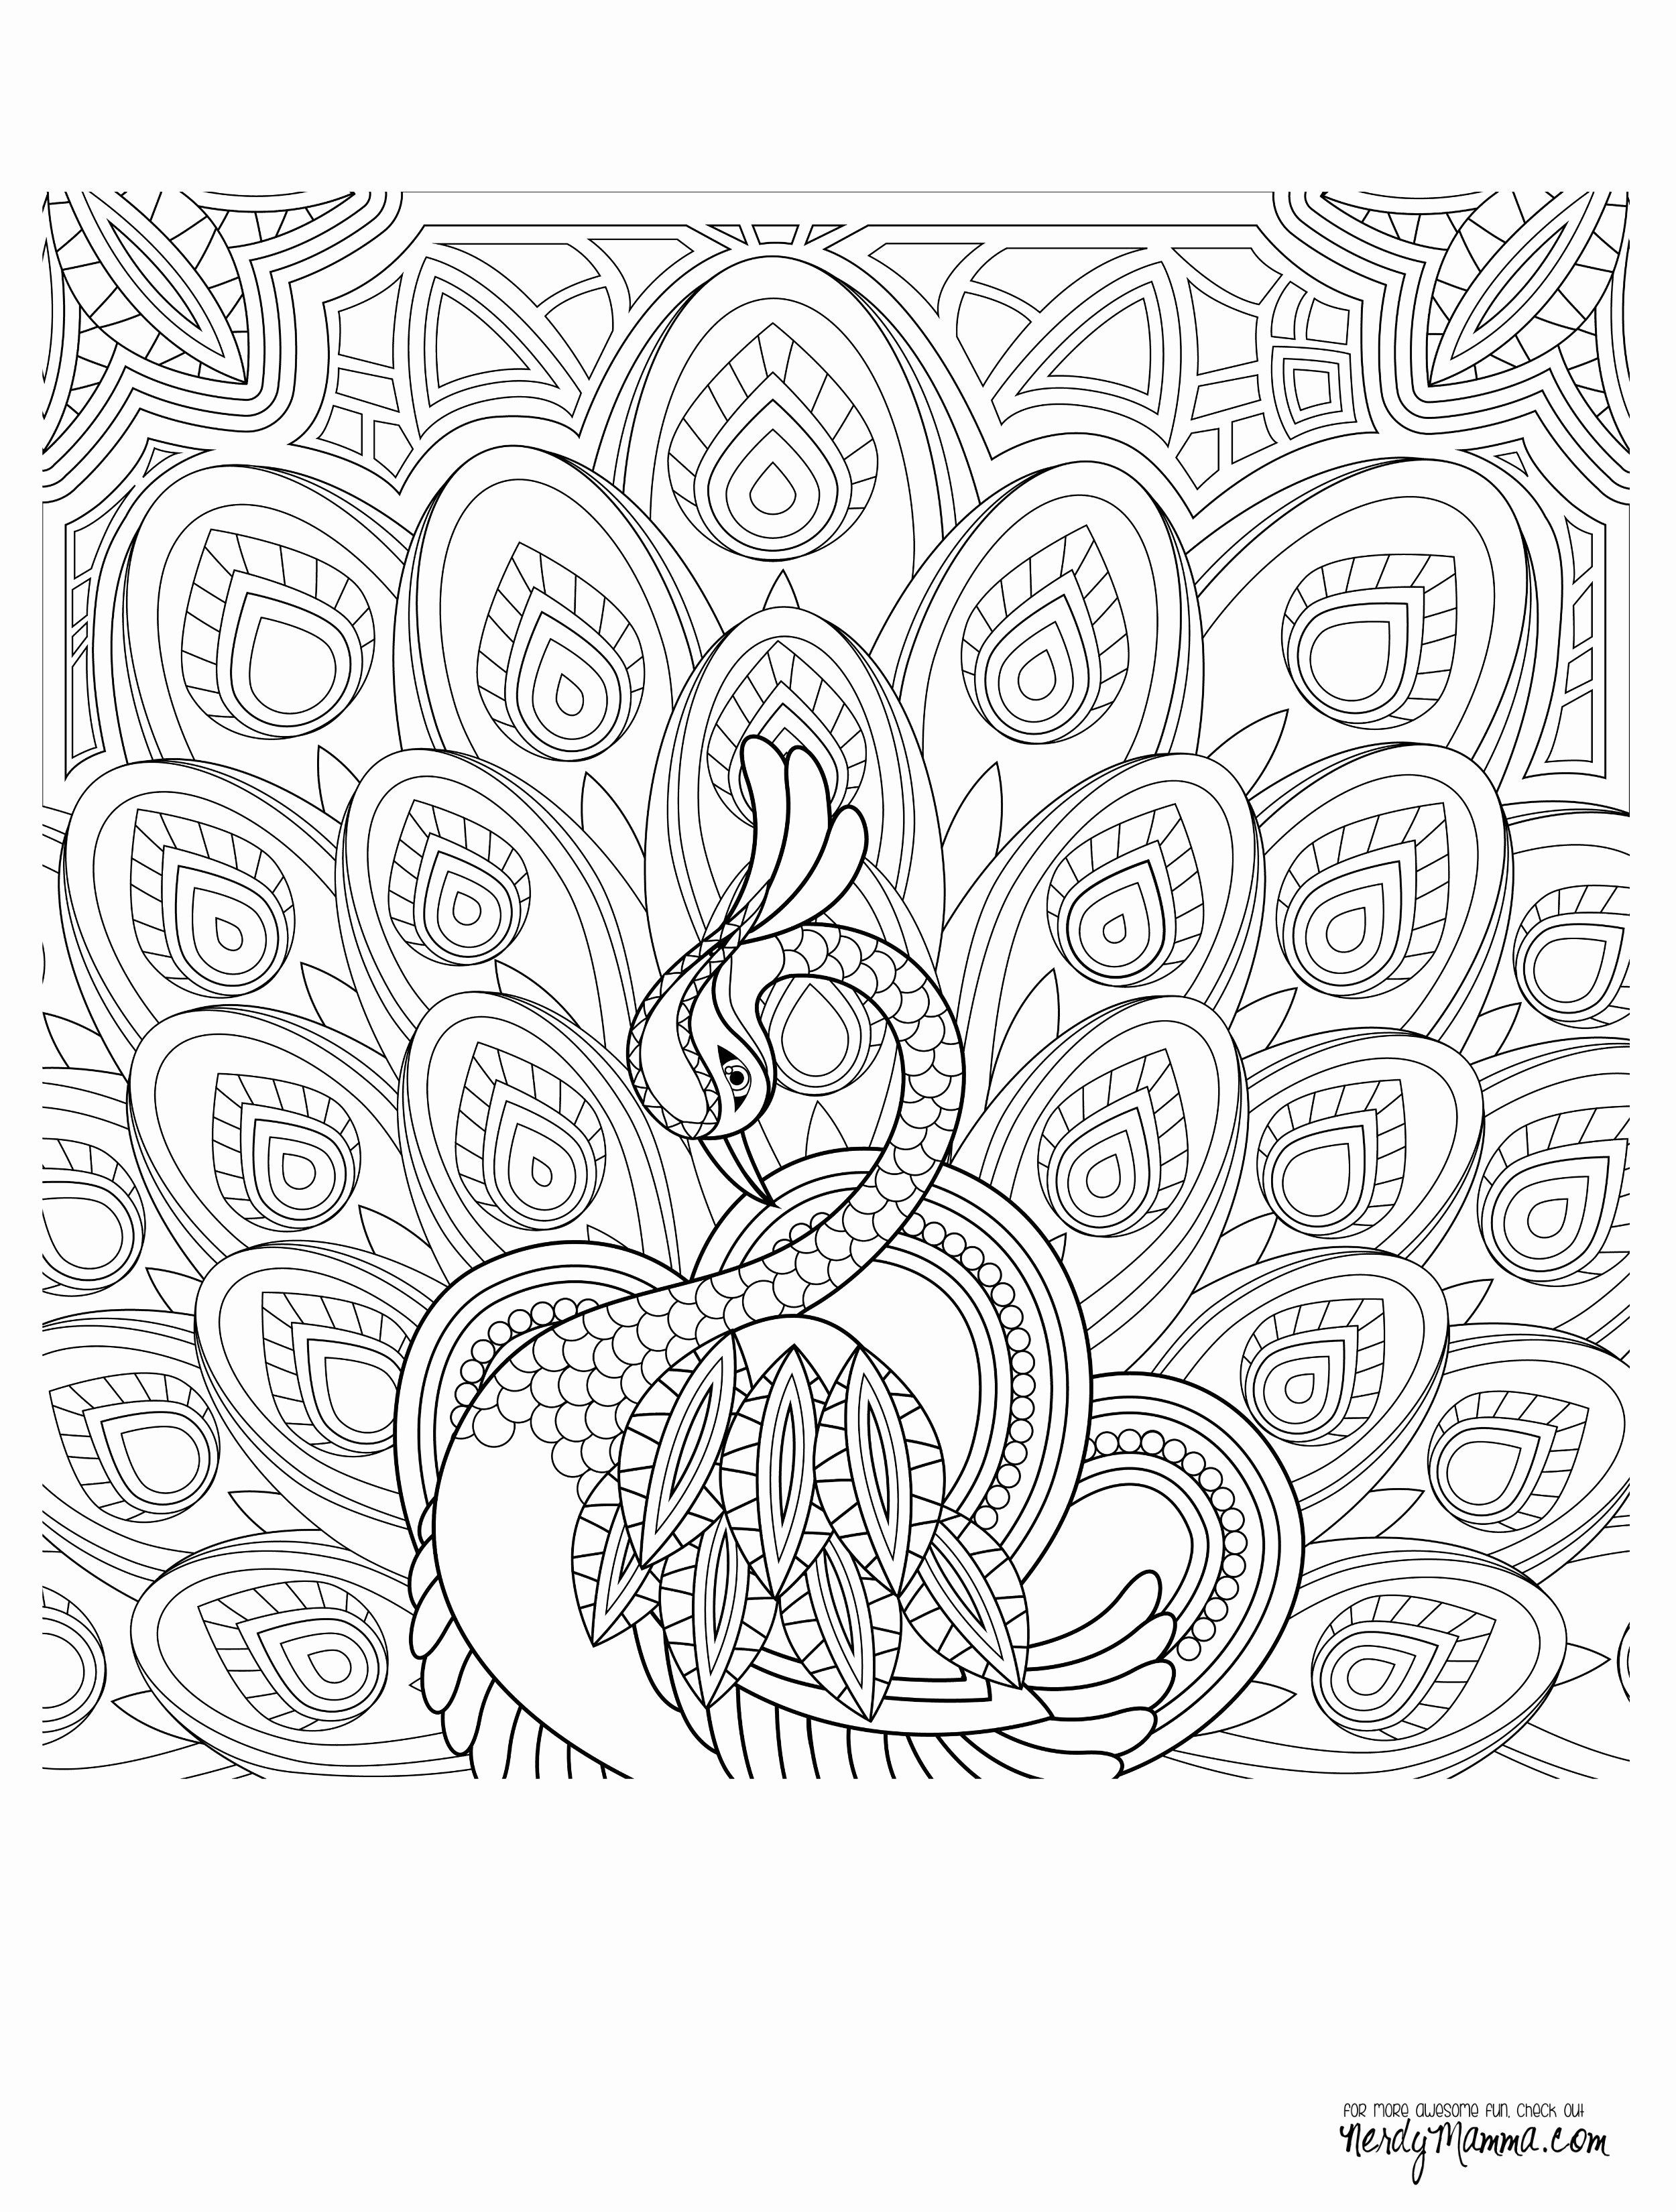 Personalized Wedding Coloring Pages  Collection 4b - To print for your project